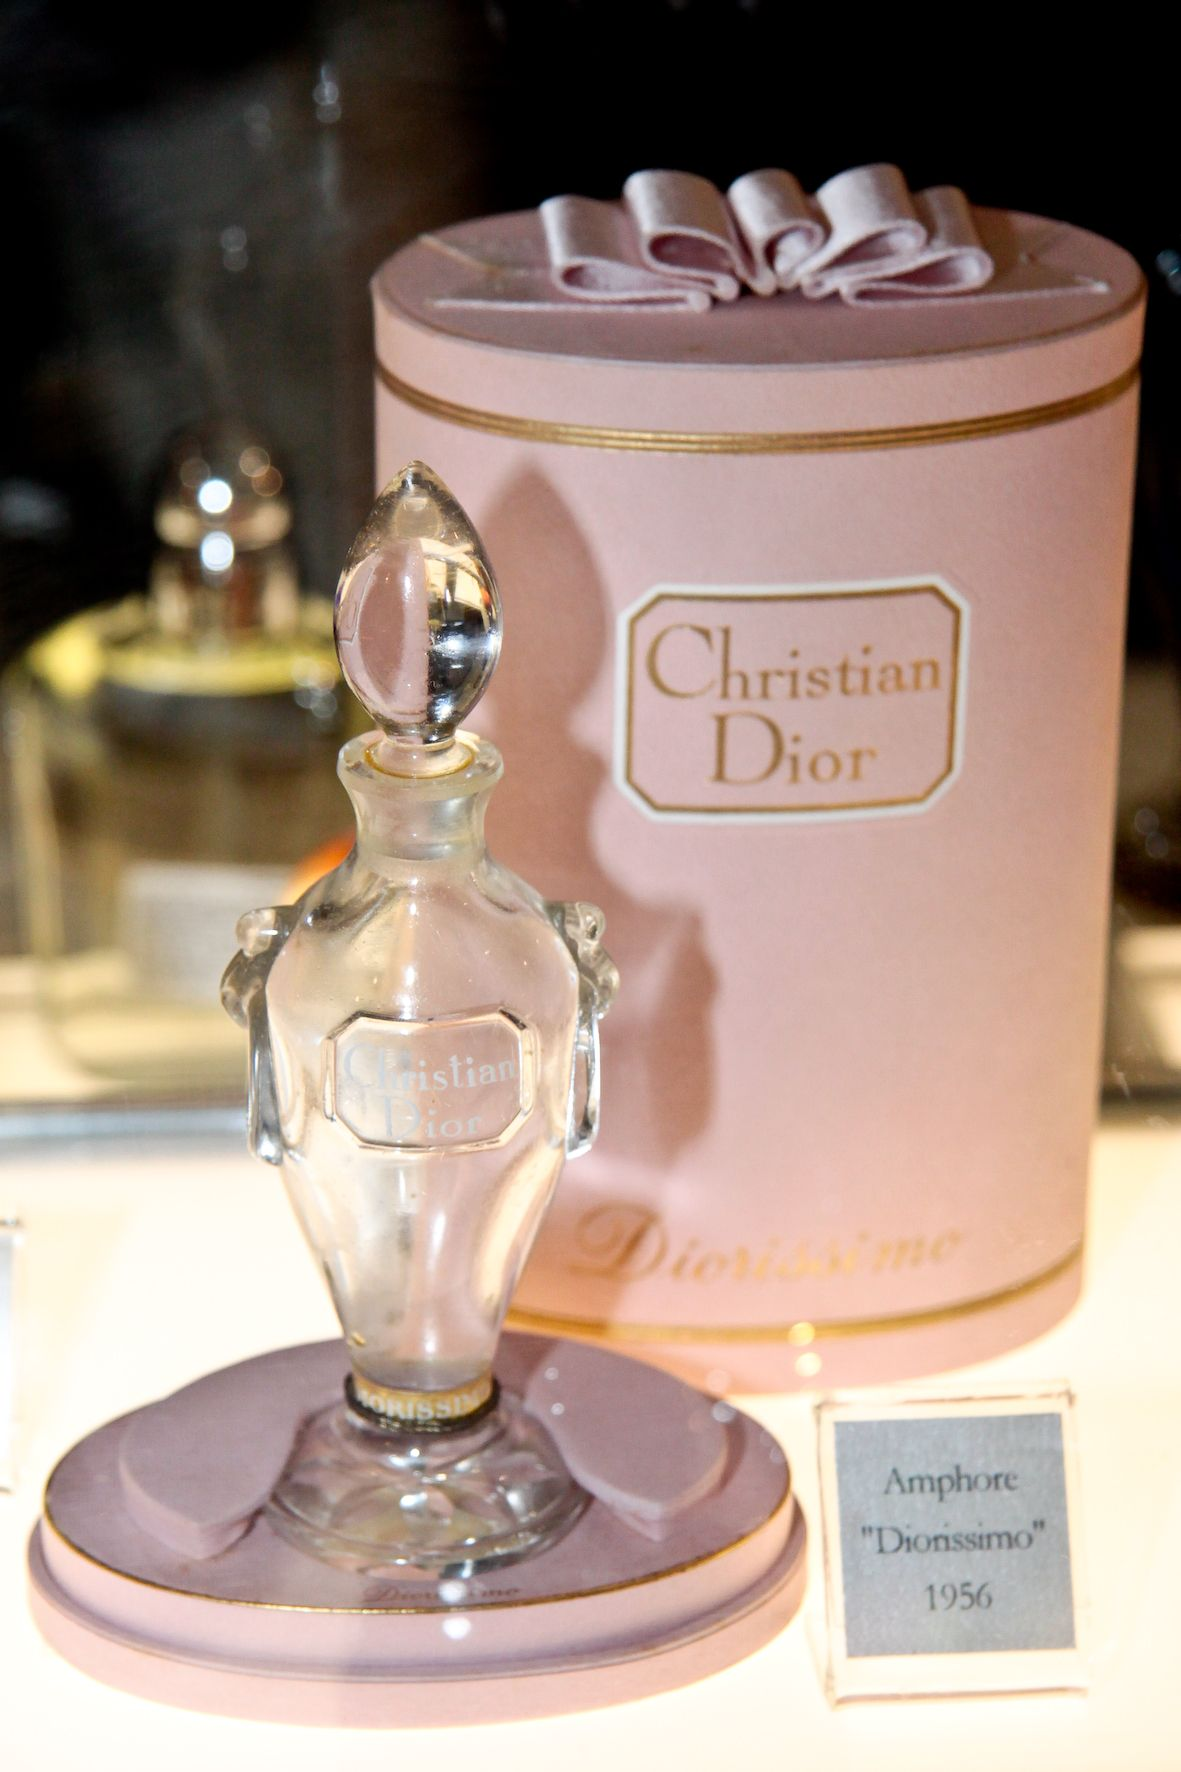 Christian Dior. Every Dior fan will love that! More lovely perfumes www.scentbird.com